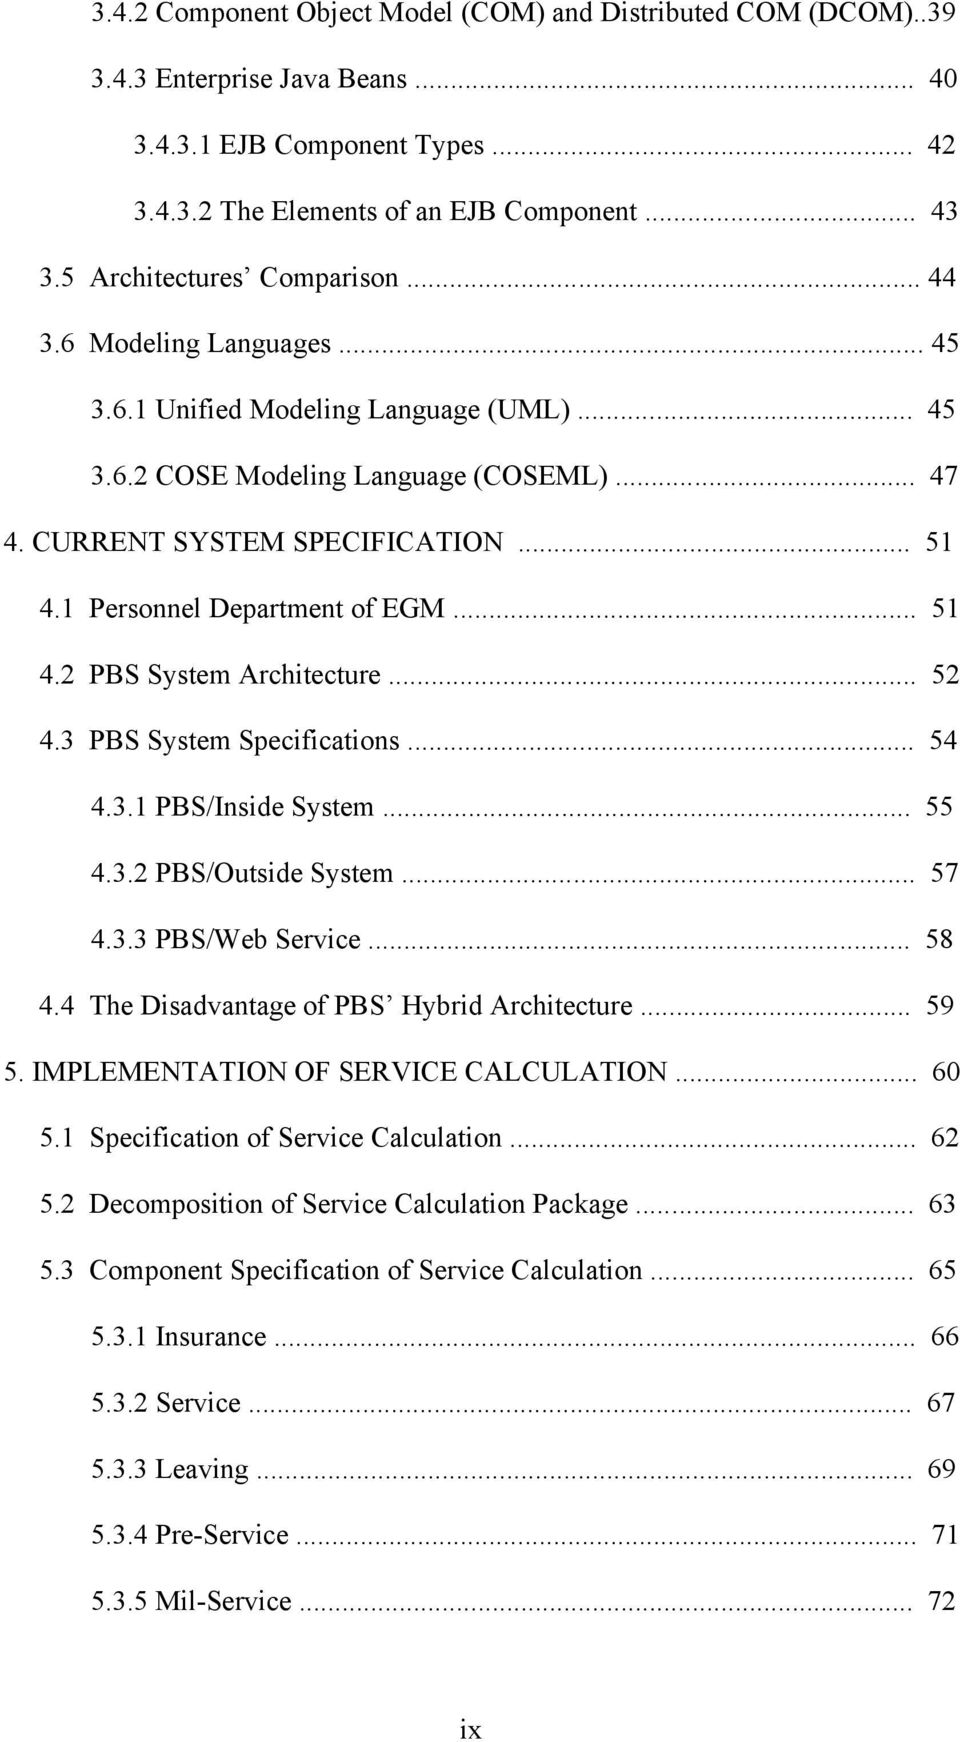 1 Personnel Department of EGM... 51 4.2 PBS System Architecture... 52 4.3 PBS System Specifications... 54 4.3.1 PBS/Inside System... 55 4.3.2 PBS/Outside System... 57 4.3.3 PBS/Web Service... 58 4.